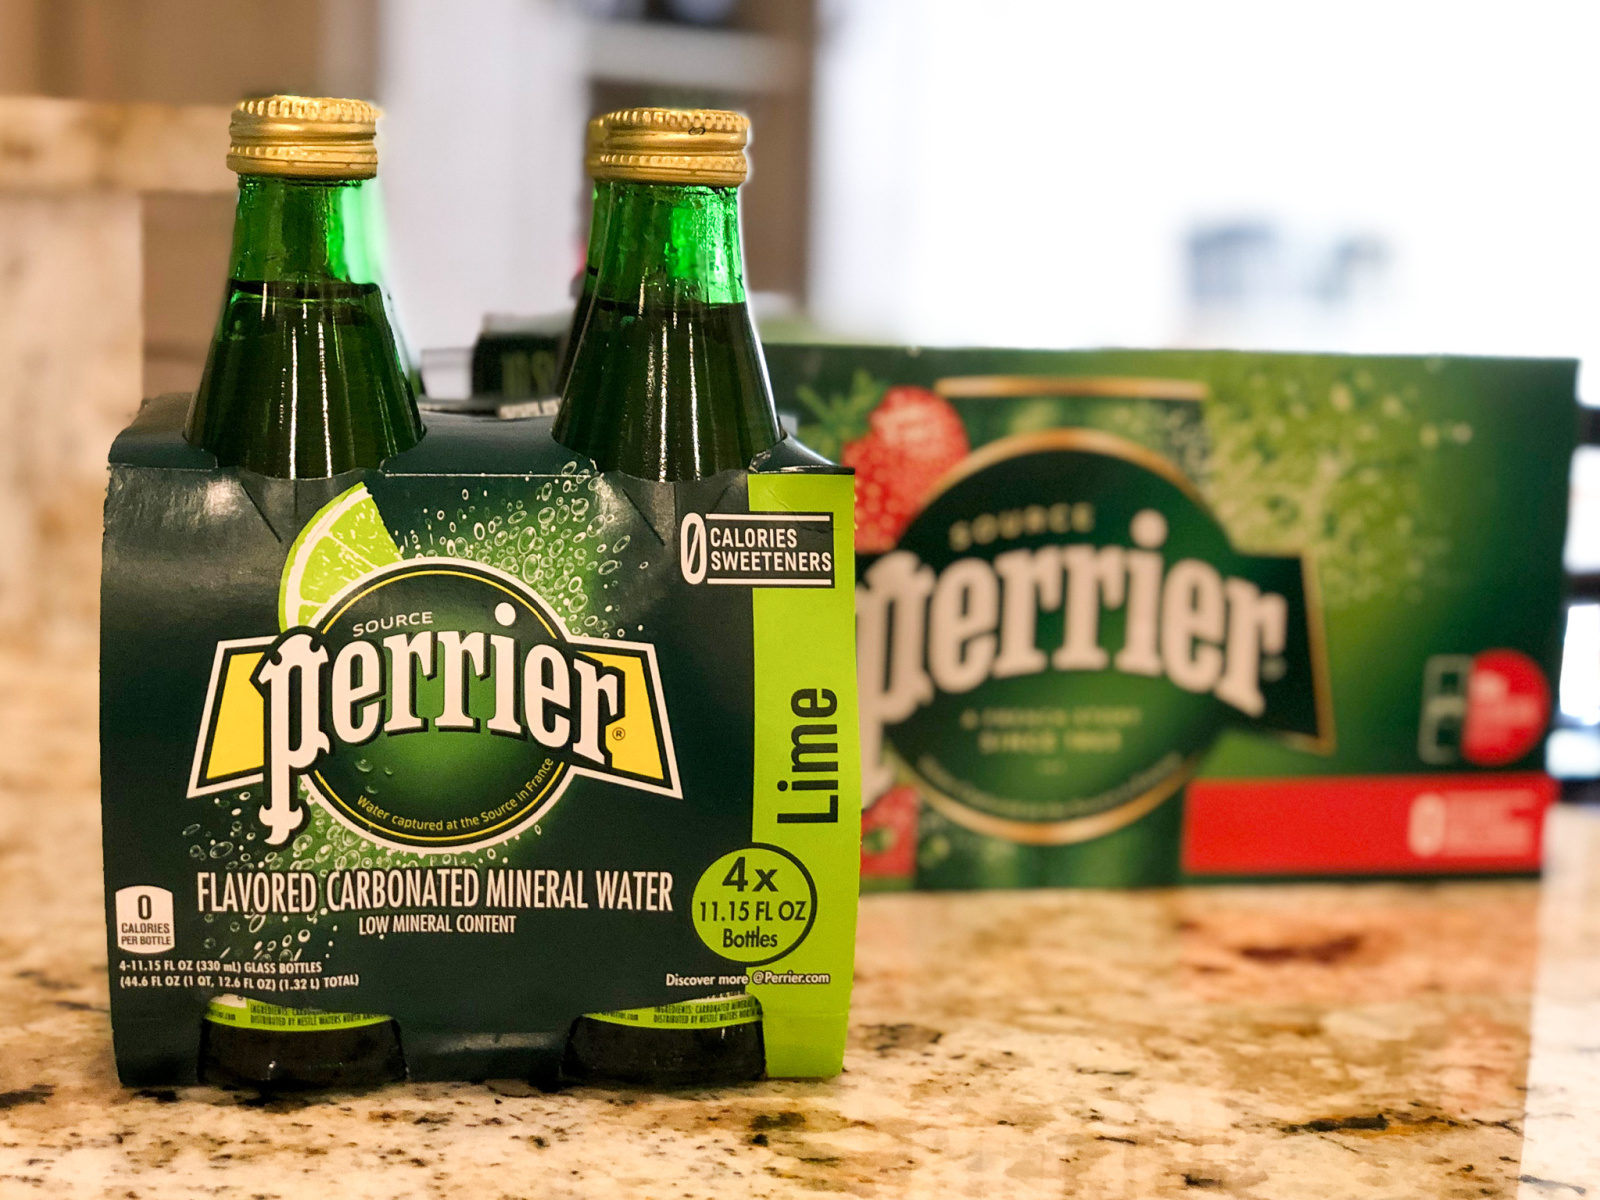 PERRIER® Sparkling Natural Mineral Water Slim Cans 10-Pack Just $3.49 At Publix on I Heart Publix 2